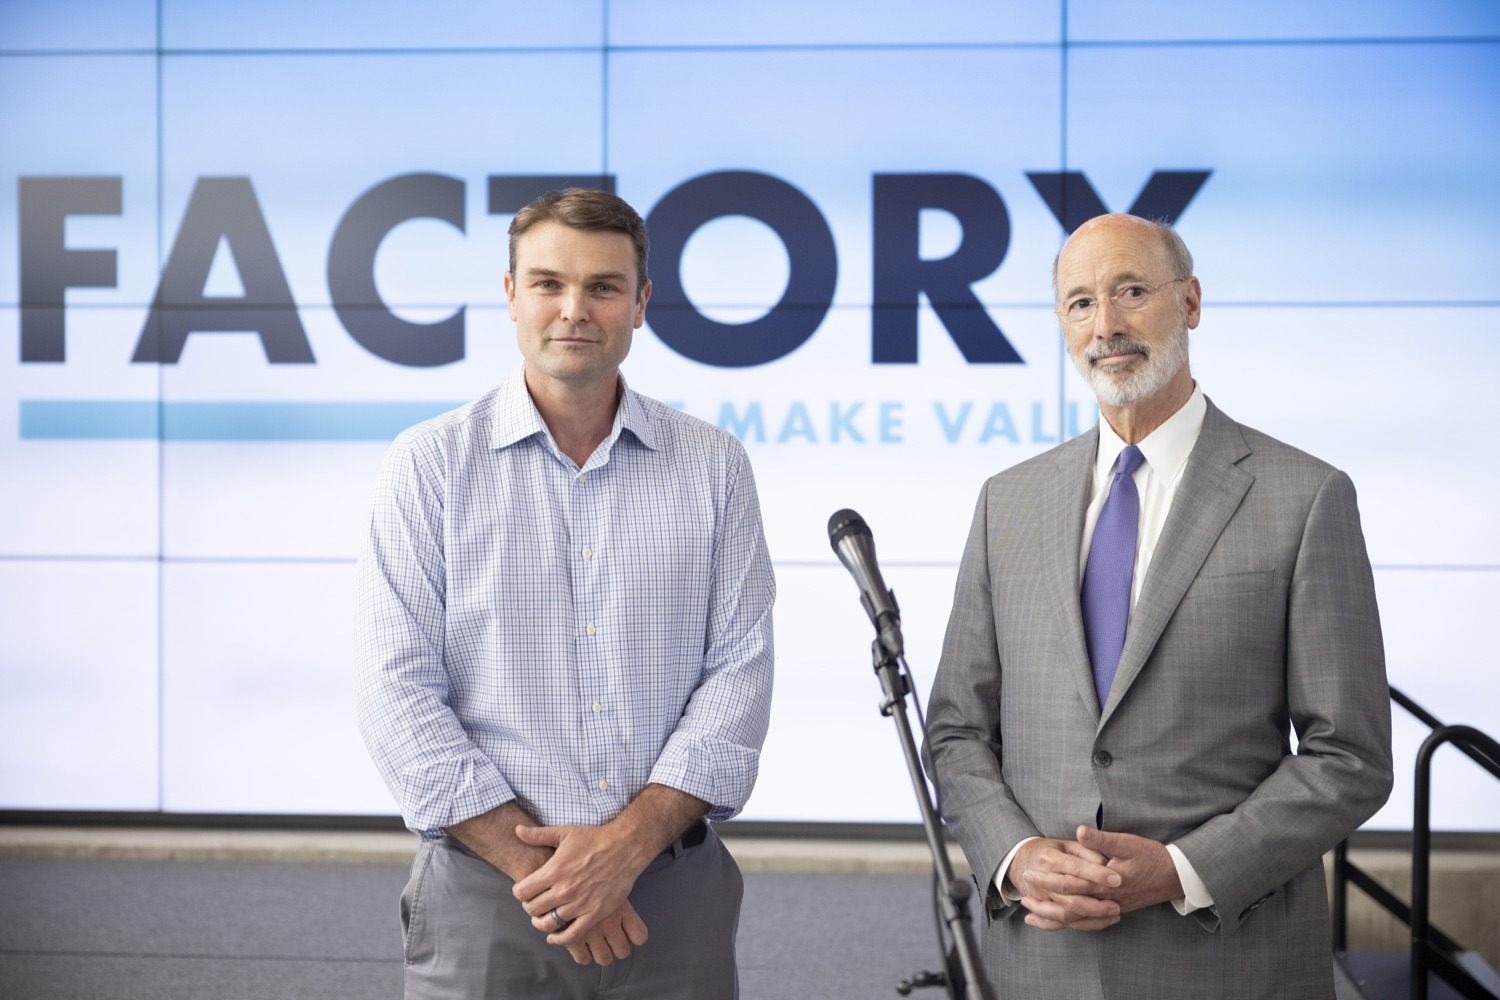 """<a href=""""https://filesource.wostreaming.net/commonwealthofpa/photo/18941_gov_economicDevelopment_dz_006.jpg"""" target=""""_blank"""">⇣Download Photo<br></a>Pennsylvania Governor Tom Wolf and Keith Caldwell, Partner  Factory LLC speaking with the press.  Governor Tom Wolf today visited Factory LLC in Bethlehem to tour the facility and highlight the importance of investing in Pennsylvanias start-up companies. During the visit, he met with companies affiliated with Factory, including Stuffed Puffs®, which received a $1 million funding proposal from the commonwealth in 2019 to expand its manufacturing operations and create jobs, Mikeys®, Pipcorn®, Honey Stinger®, and ROAR® Organic. Bethlehem, PA  July 19, 2021"""